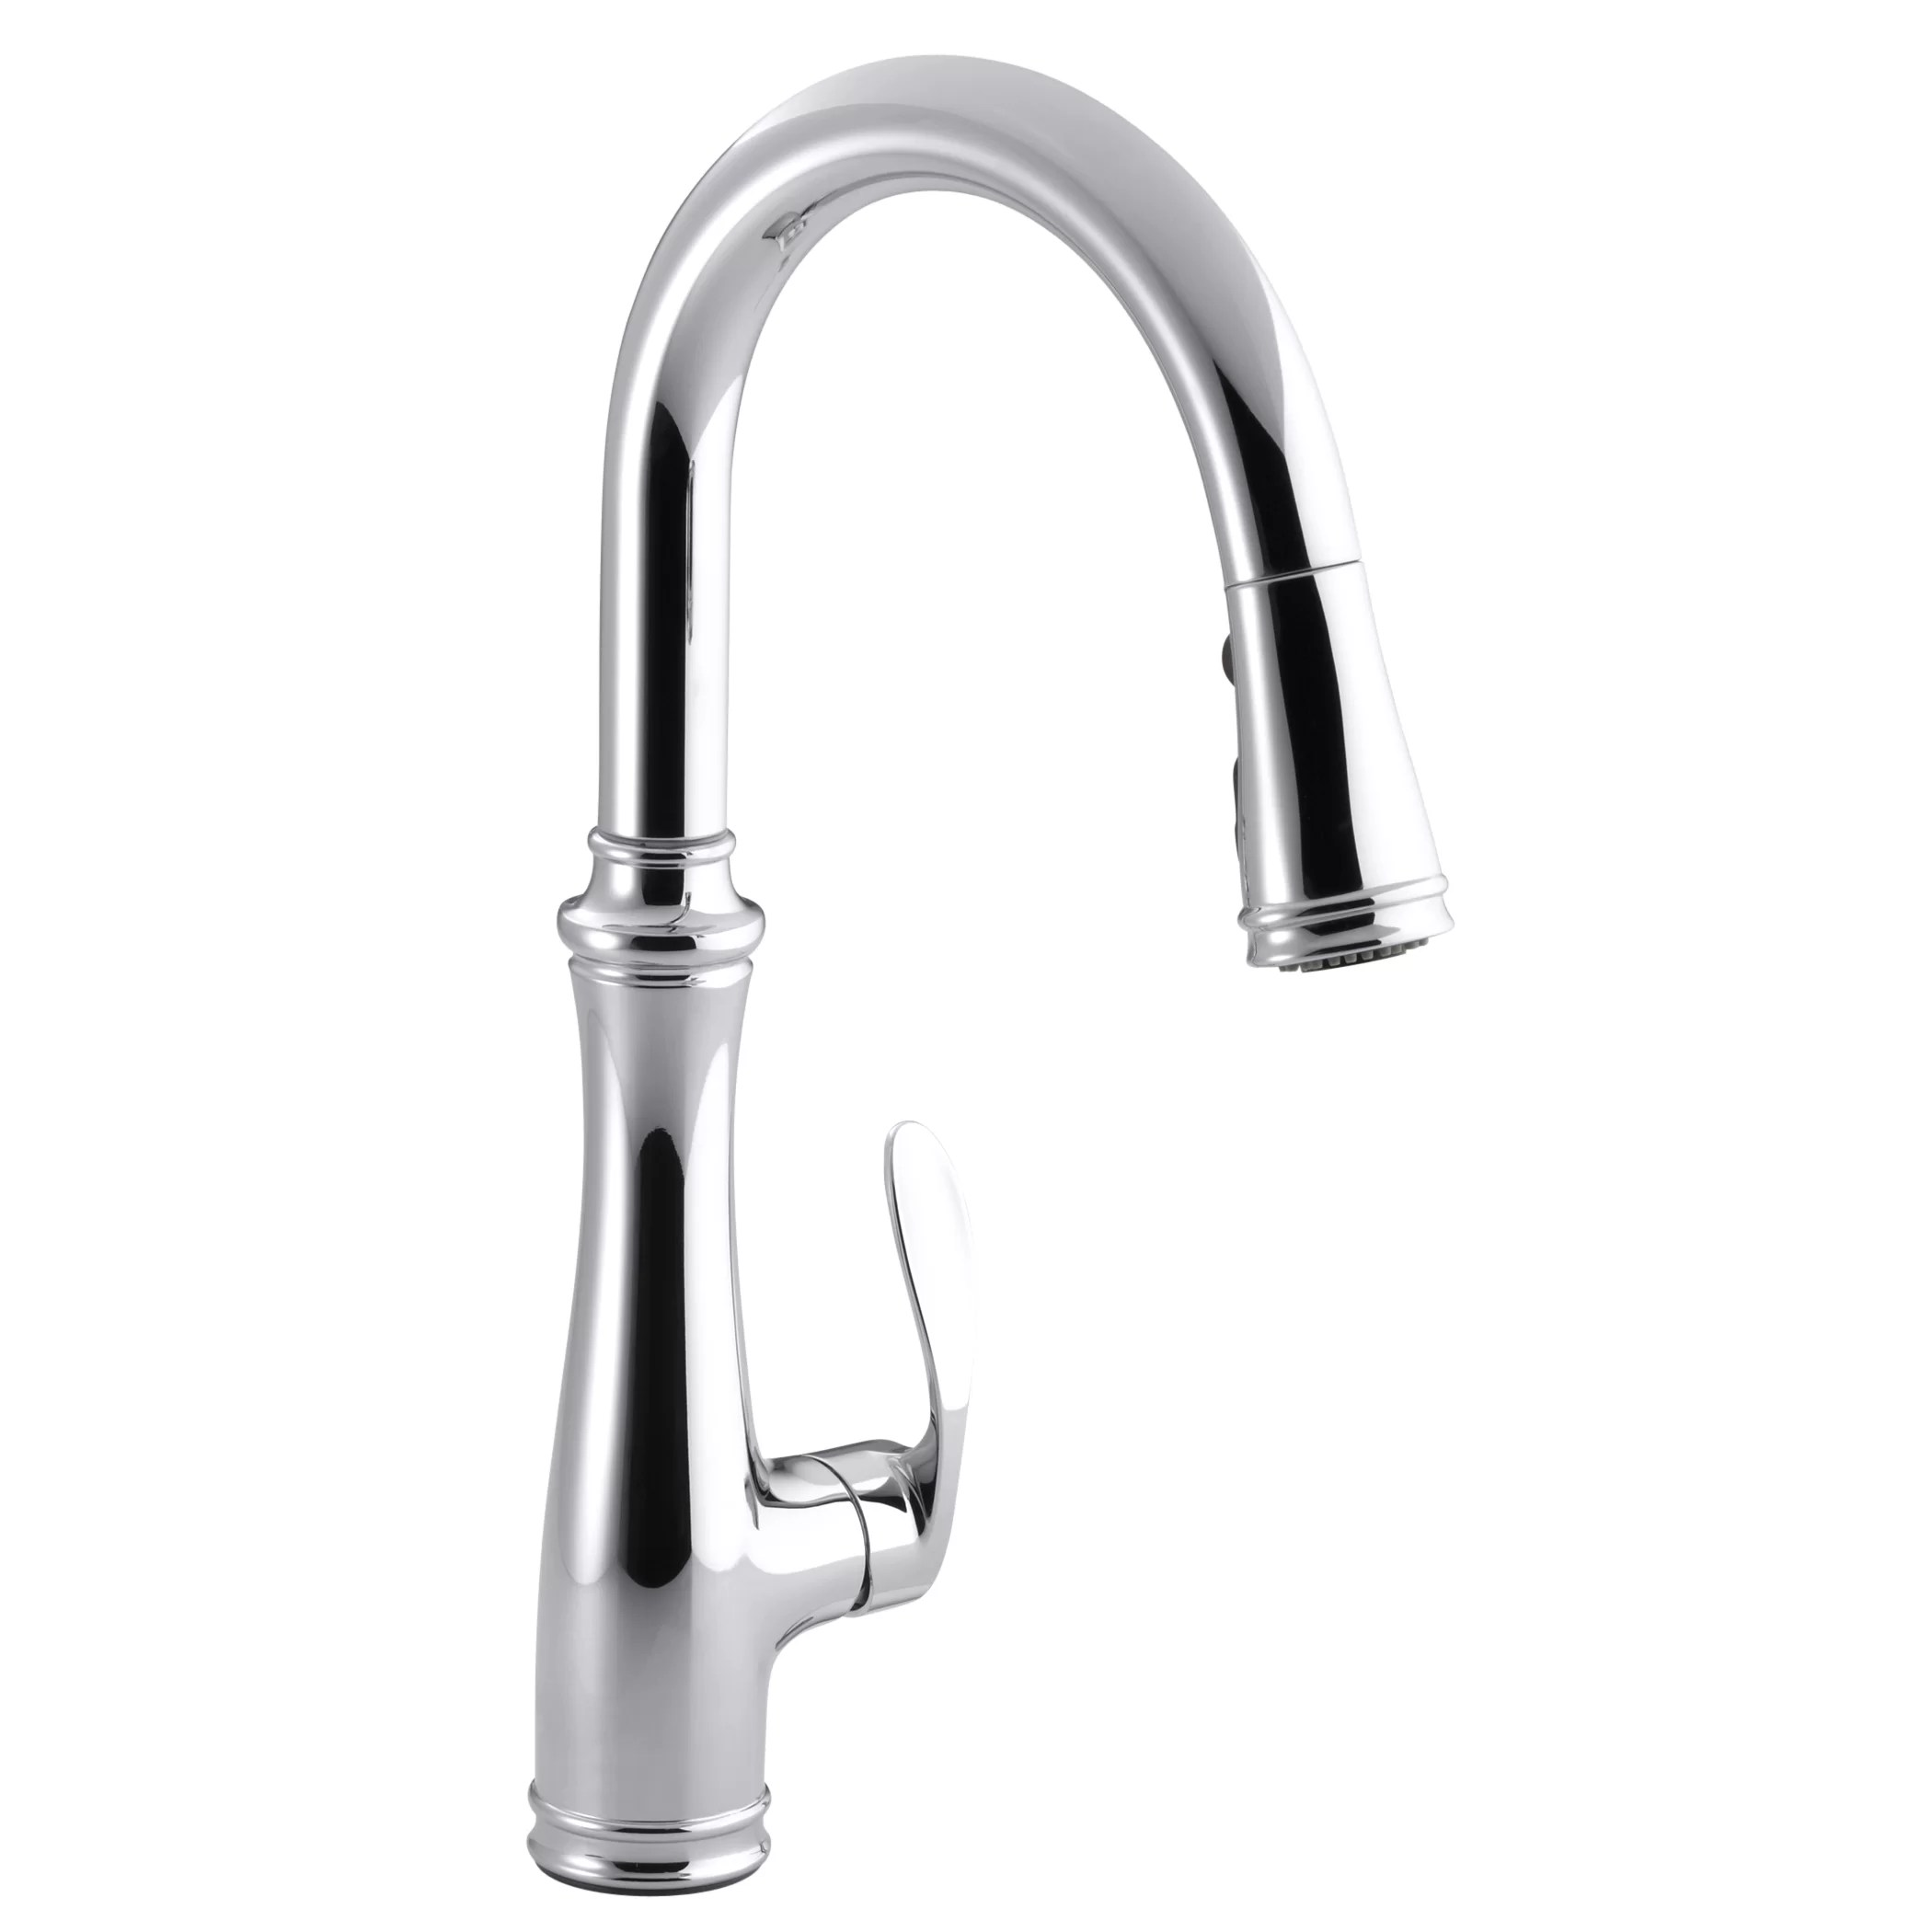 kohler c kitchen sink faucet Bellera Kitchen Sink Faucet with 16 3 4 Pull Down Spout